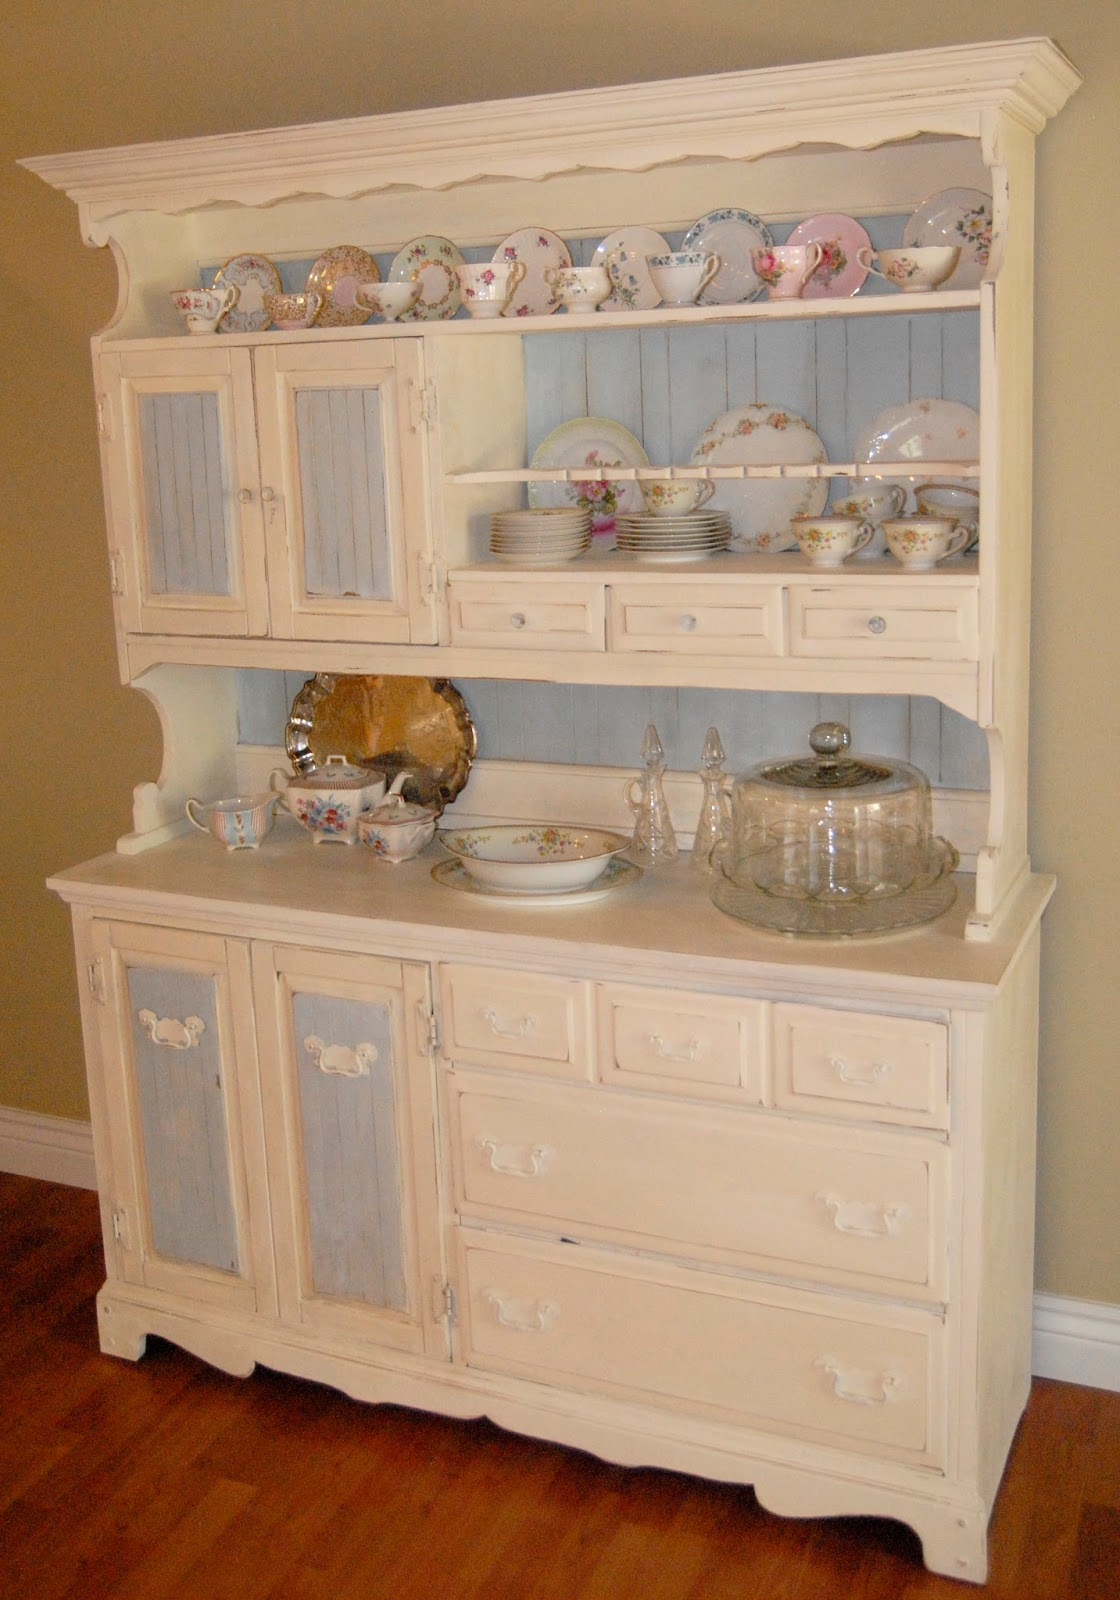 Muebles Chic Simply Shabby: Annie Sloan Chalk Paint Project